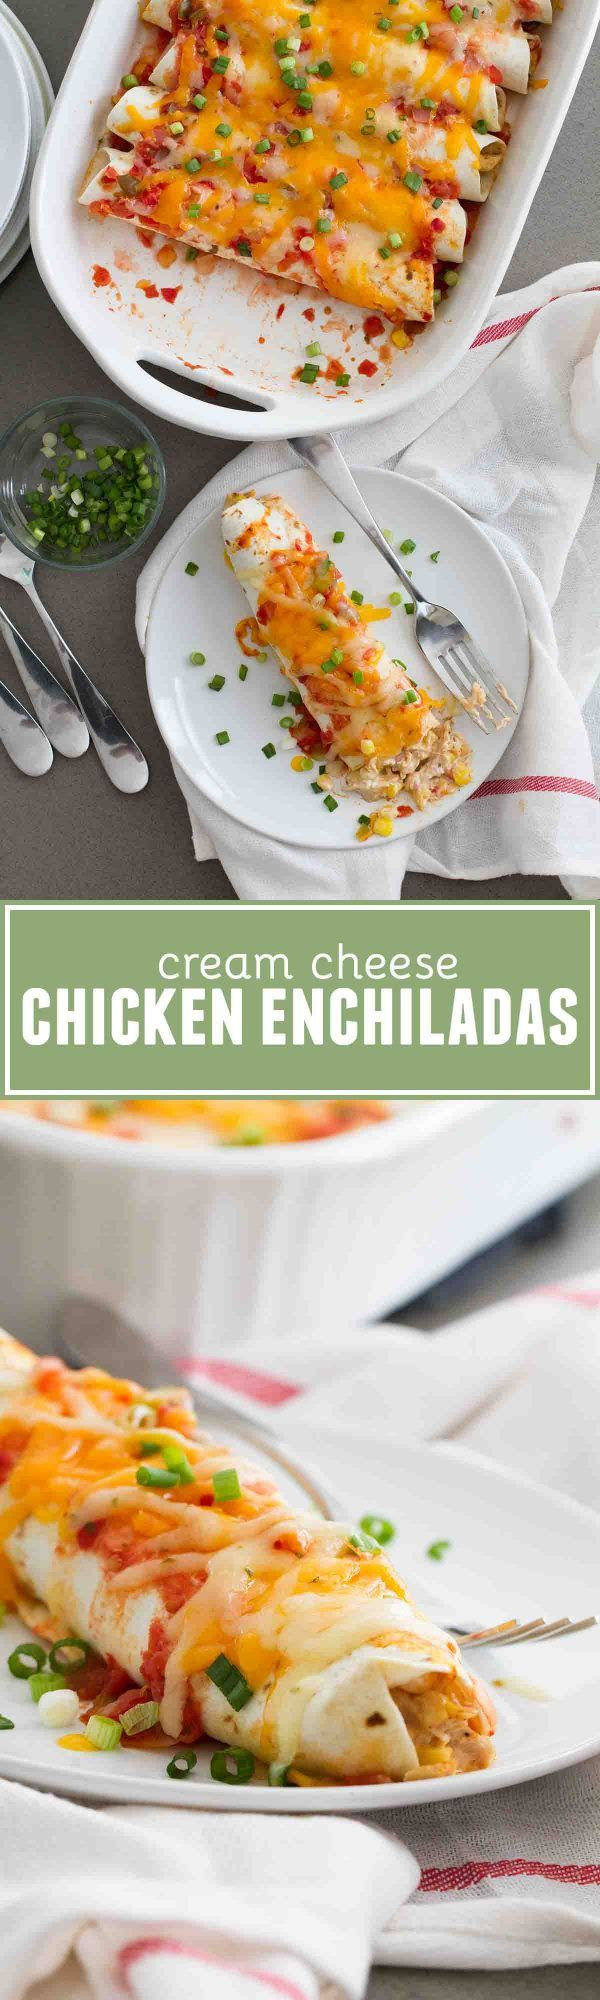 These Cream Cheese Chicken Enchiladas are a family favorite - filled with a creamy chicken and corn filling, and topped with salsa and cheese.